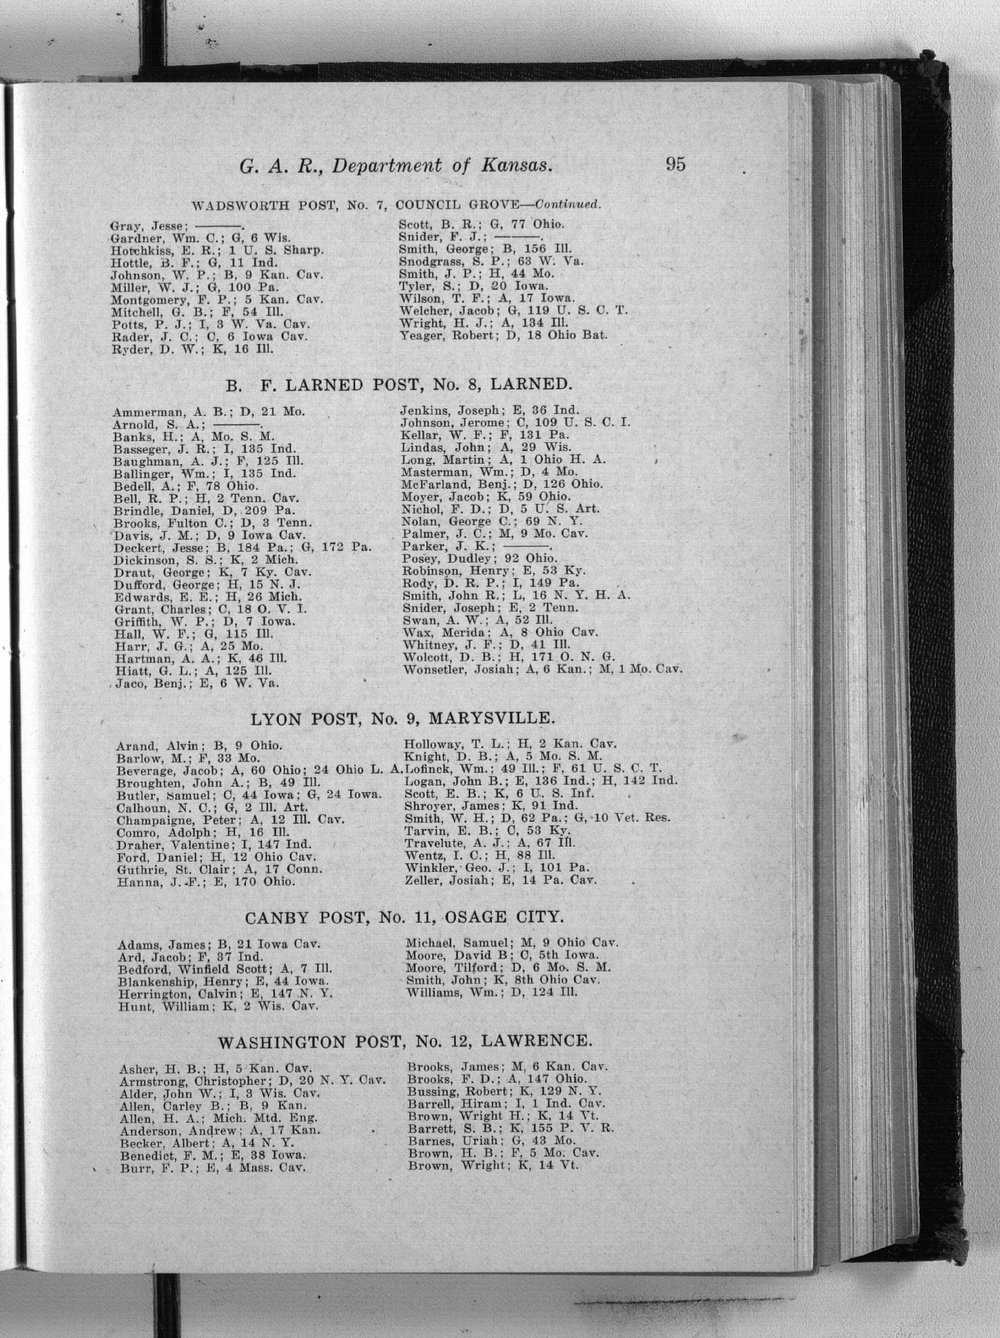 State roster of the Kansas Grand Army of the Republic - 95